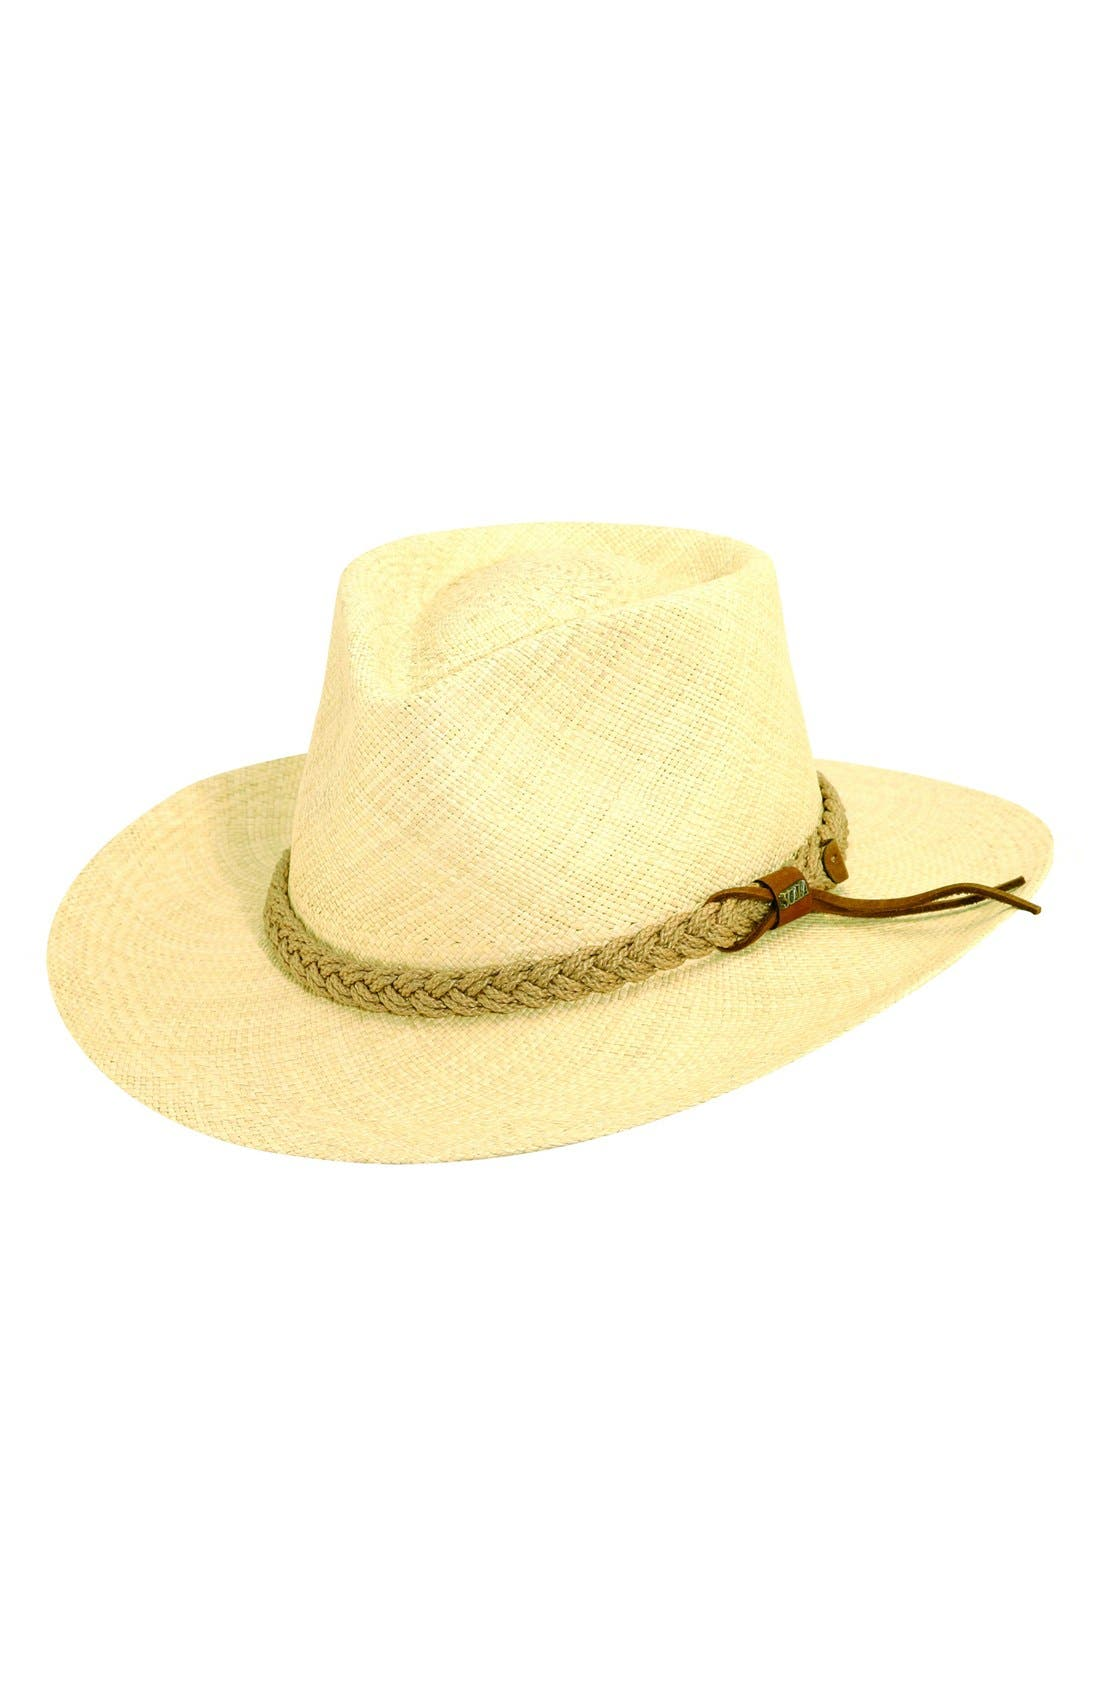 Panama Straw Outback Hat,                         Main,                         color, Natural